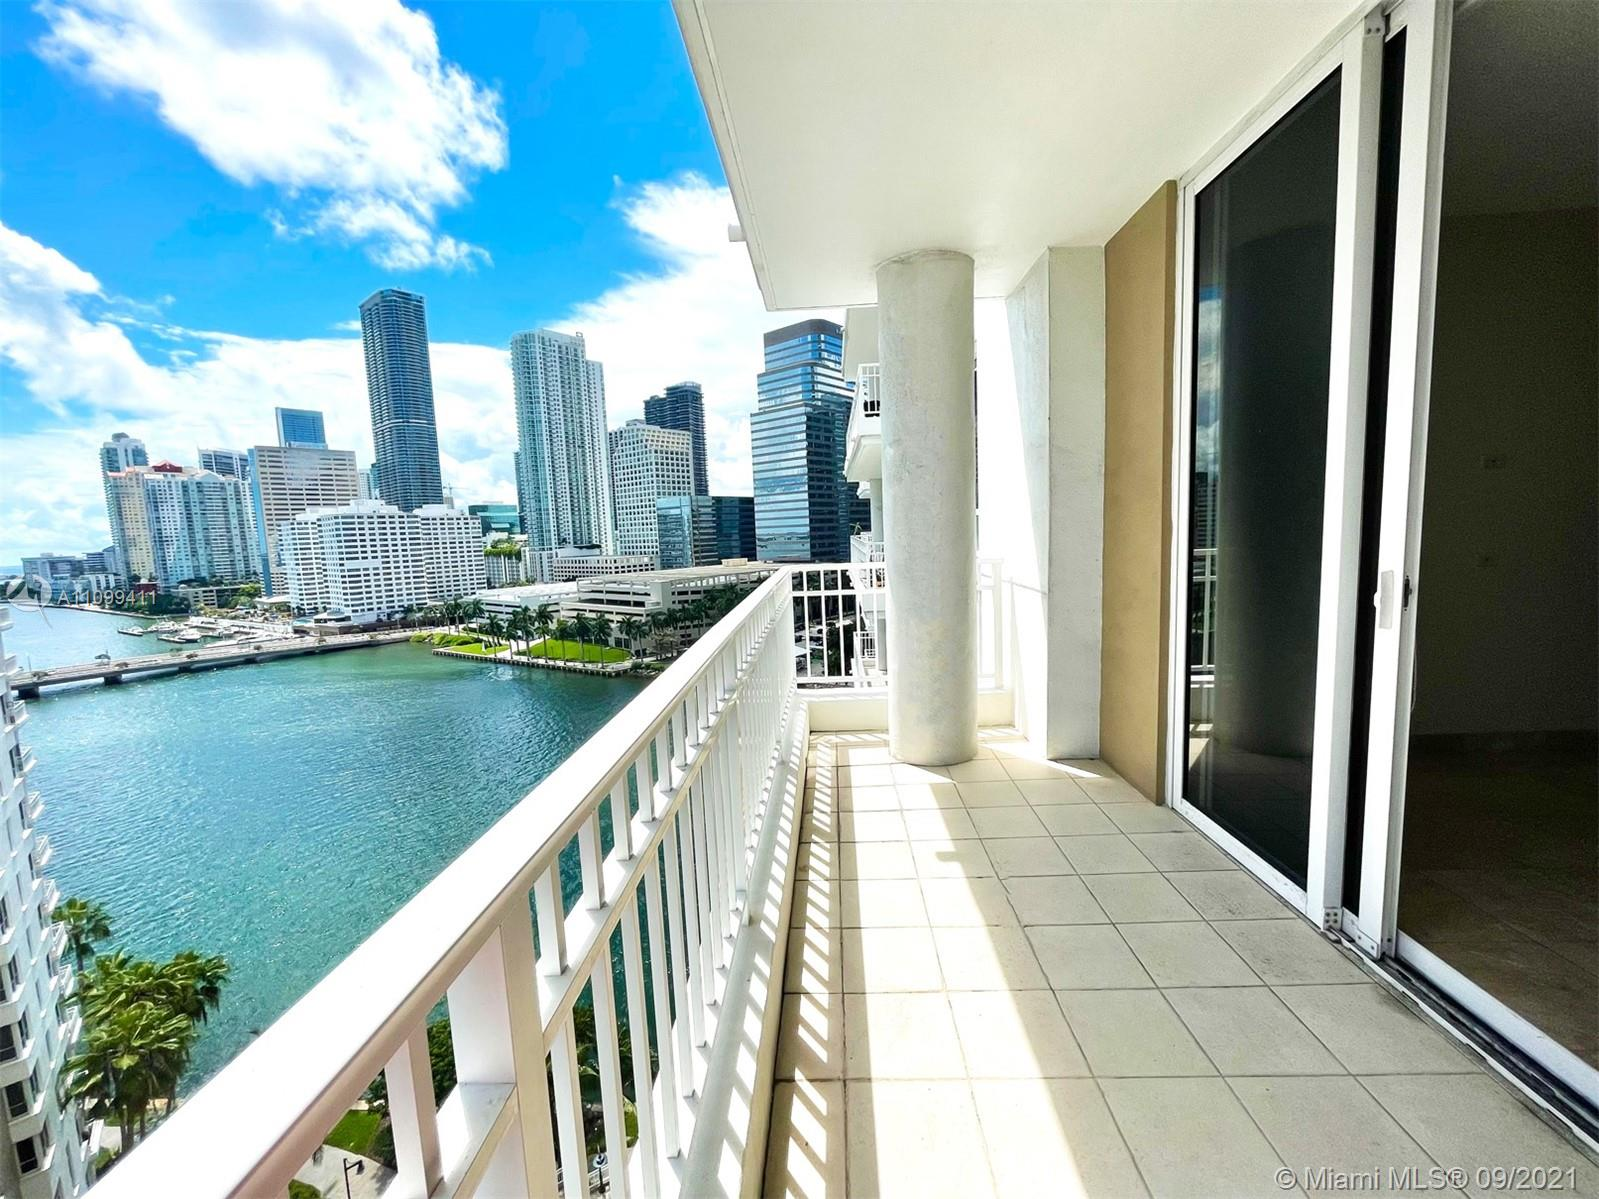 This one won't last !!! 1Bedroom 1.5Bath Condo in the exclusive Brickell Key island. 14th Floor, Featuring Marble floors, High Impact Windows, Hardwood floors, Stainless steal appliances, Gorgeous water & city views.  Surrounded by luxury restaurants, shopping & Night Life.